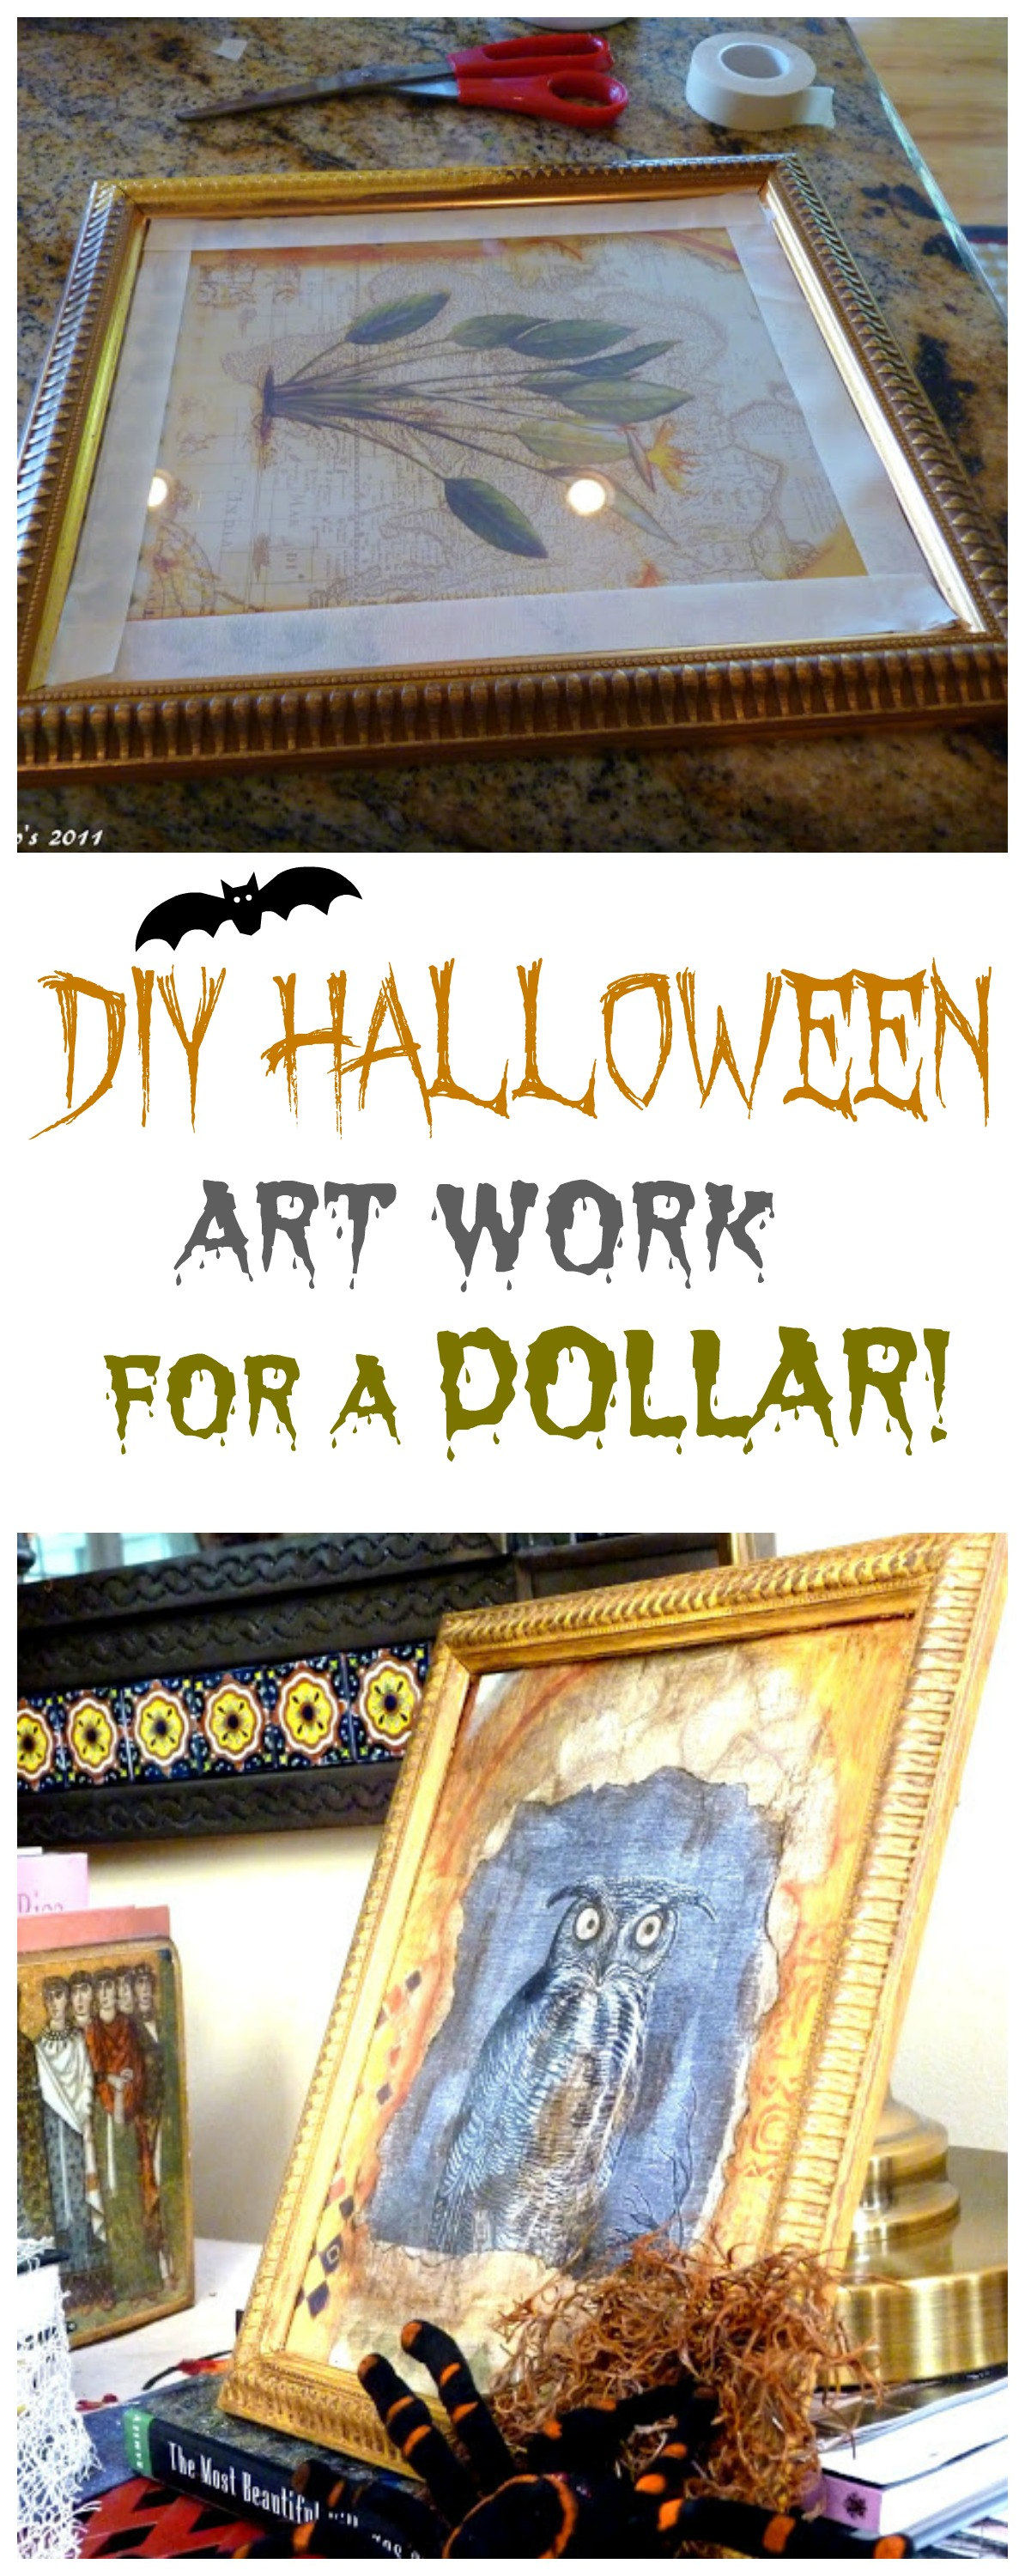 Halloween art work for a dollar